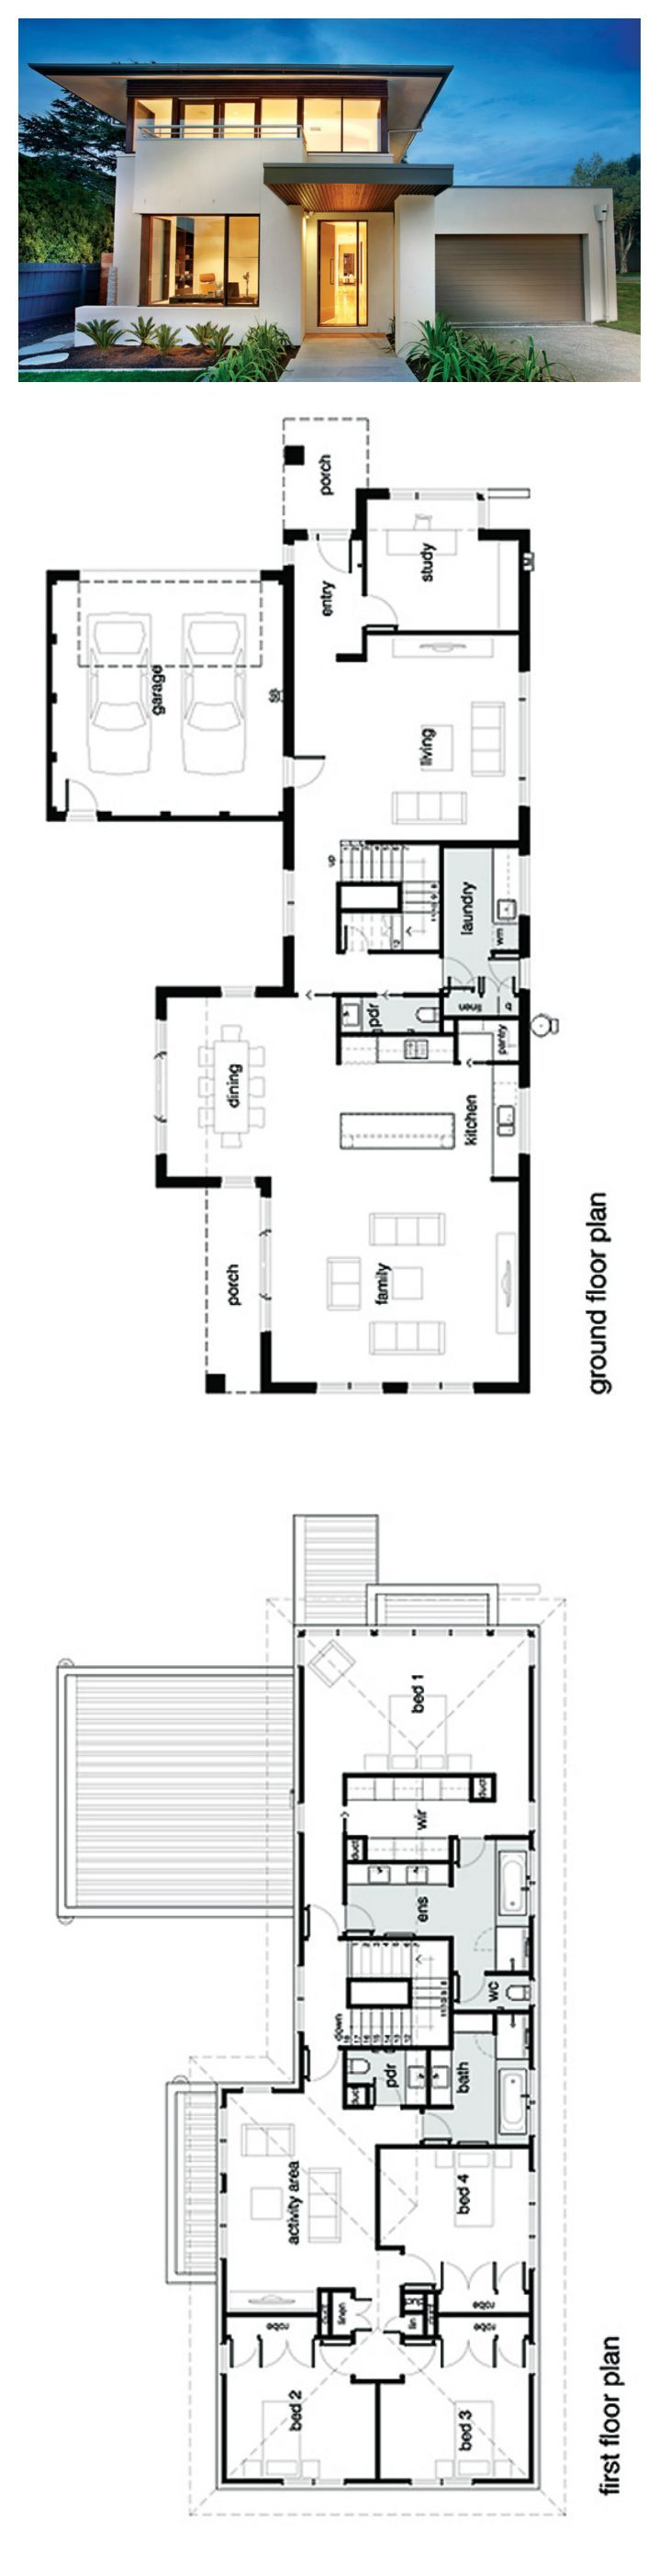 Plan sf bed study bath car story ideas for the house pinterest cars and also rh za